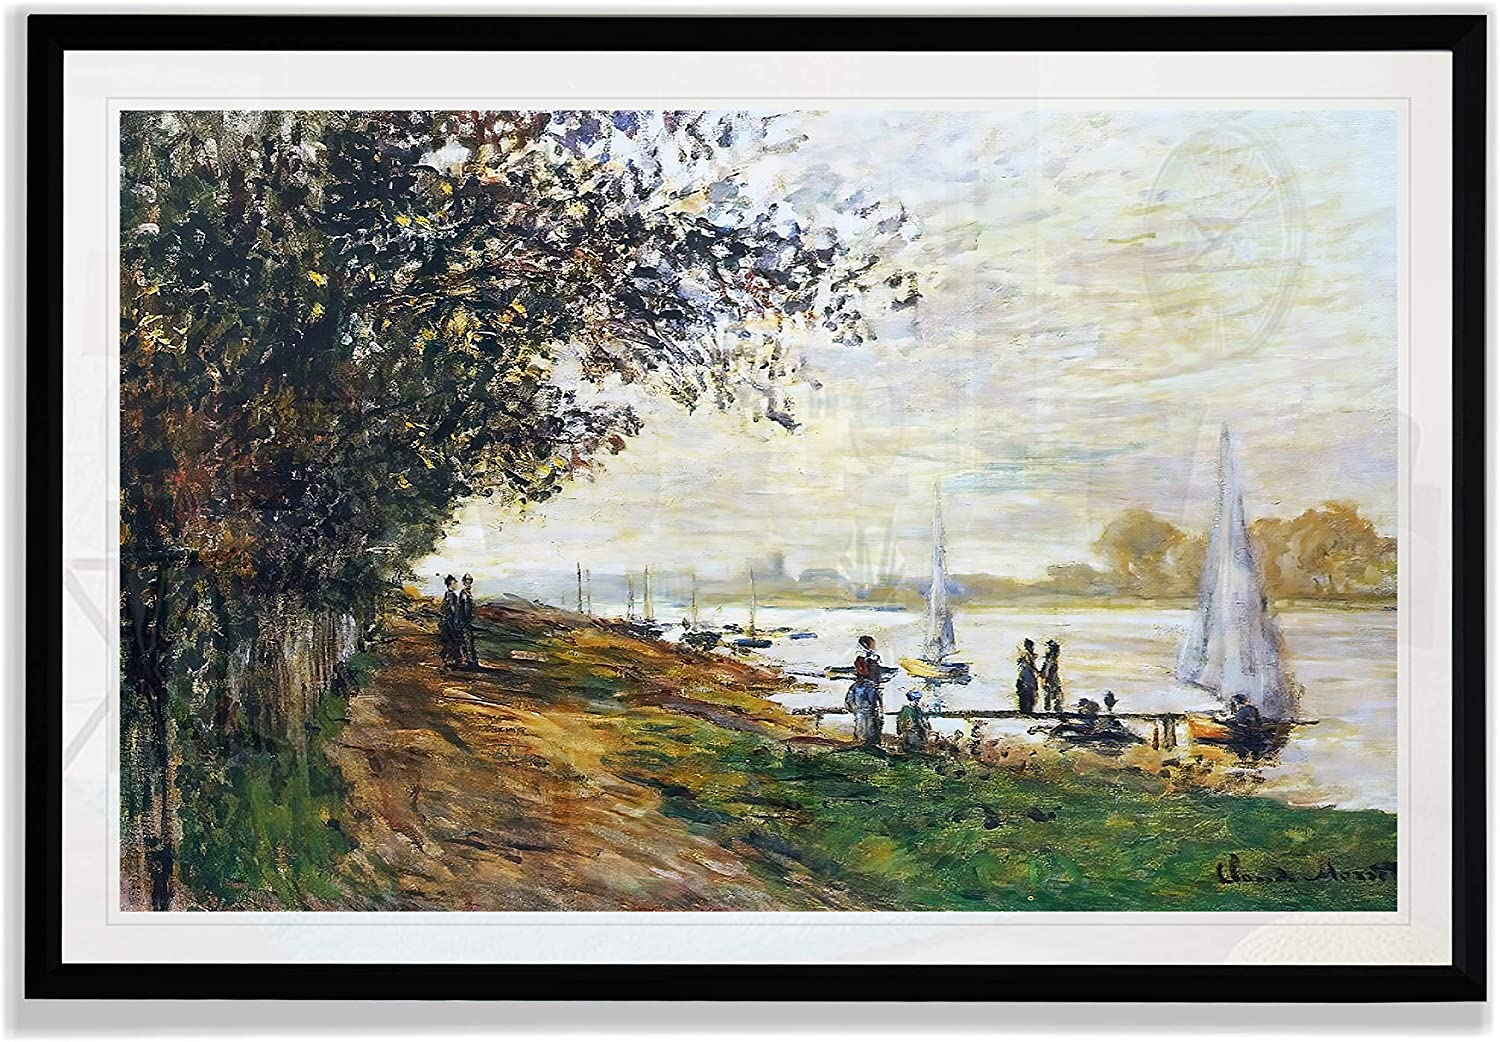 Monet Wall Art Collection The The Riverbank at Le Petit-Gennevilliers, Sunset, 1875 Fine Giclee Prints Wall Art in Premium Quality Framed Ready to Hang 28X48, Black